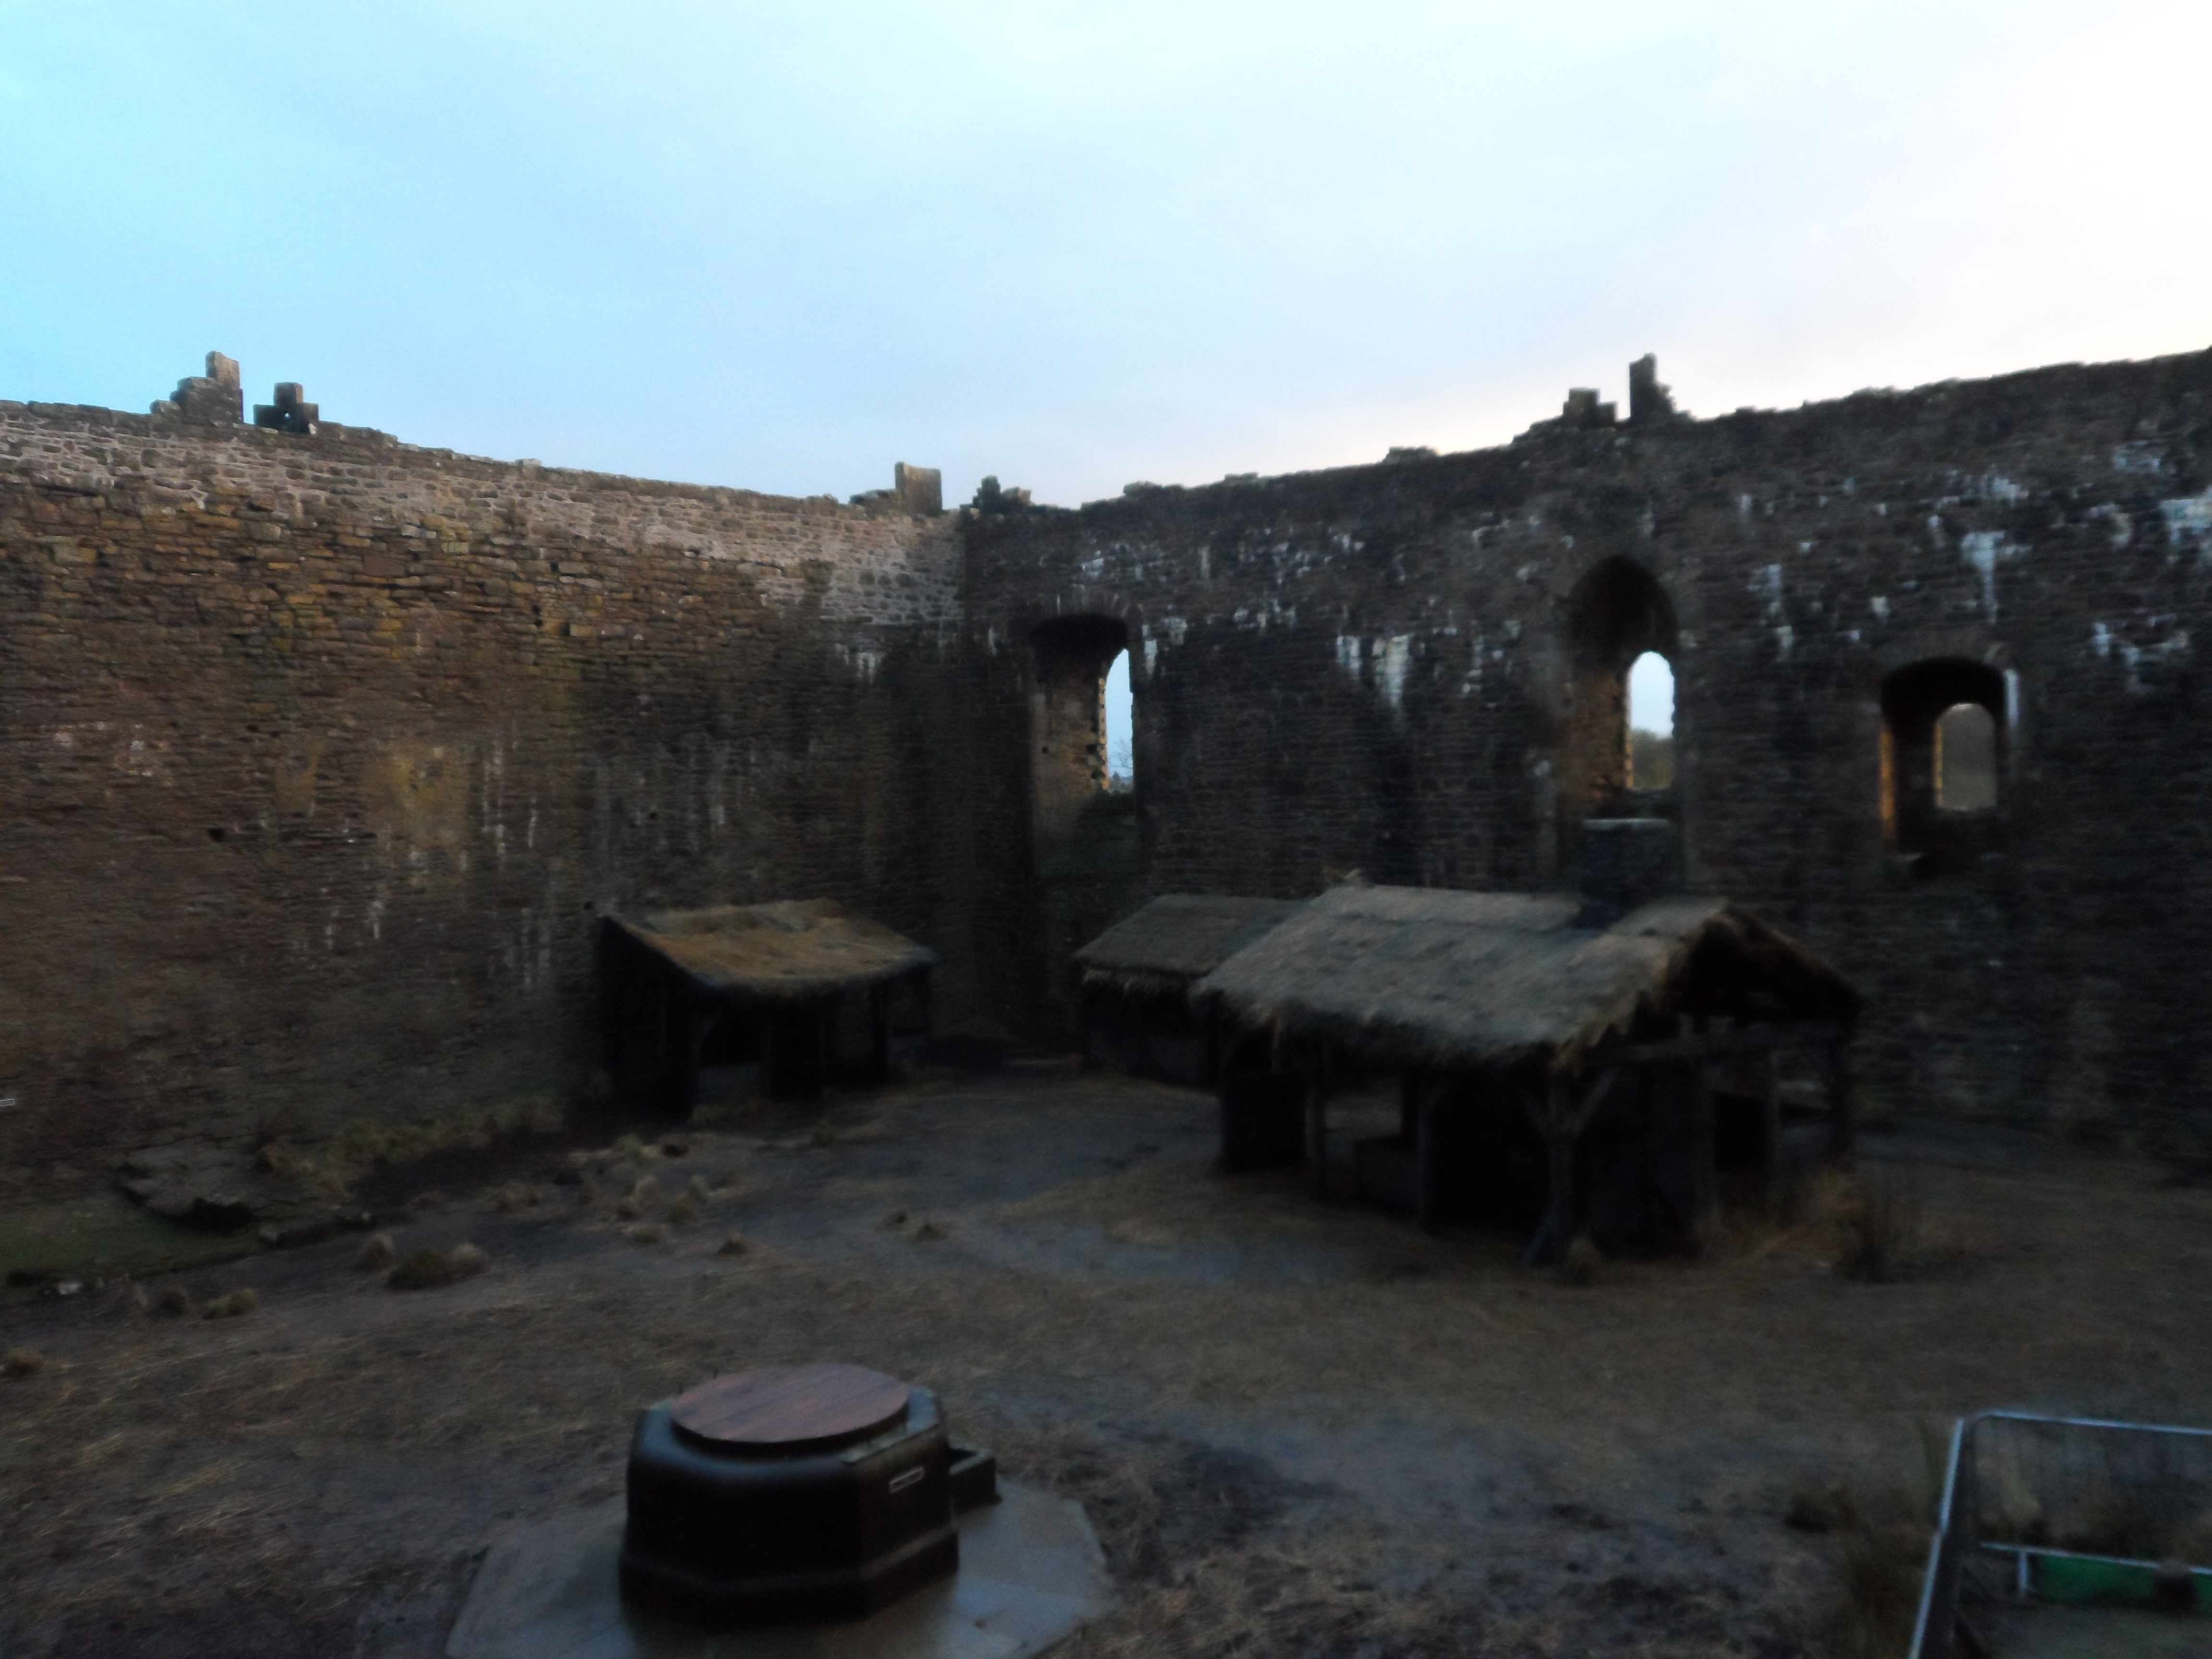 Courtyard of Castle Doune